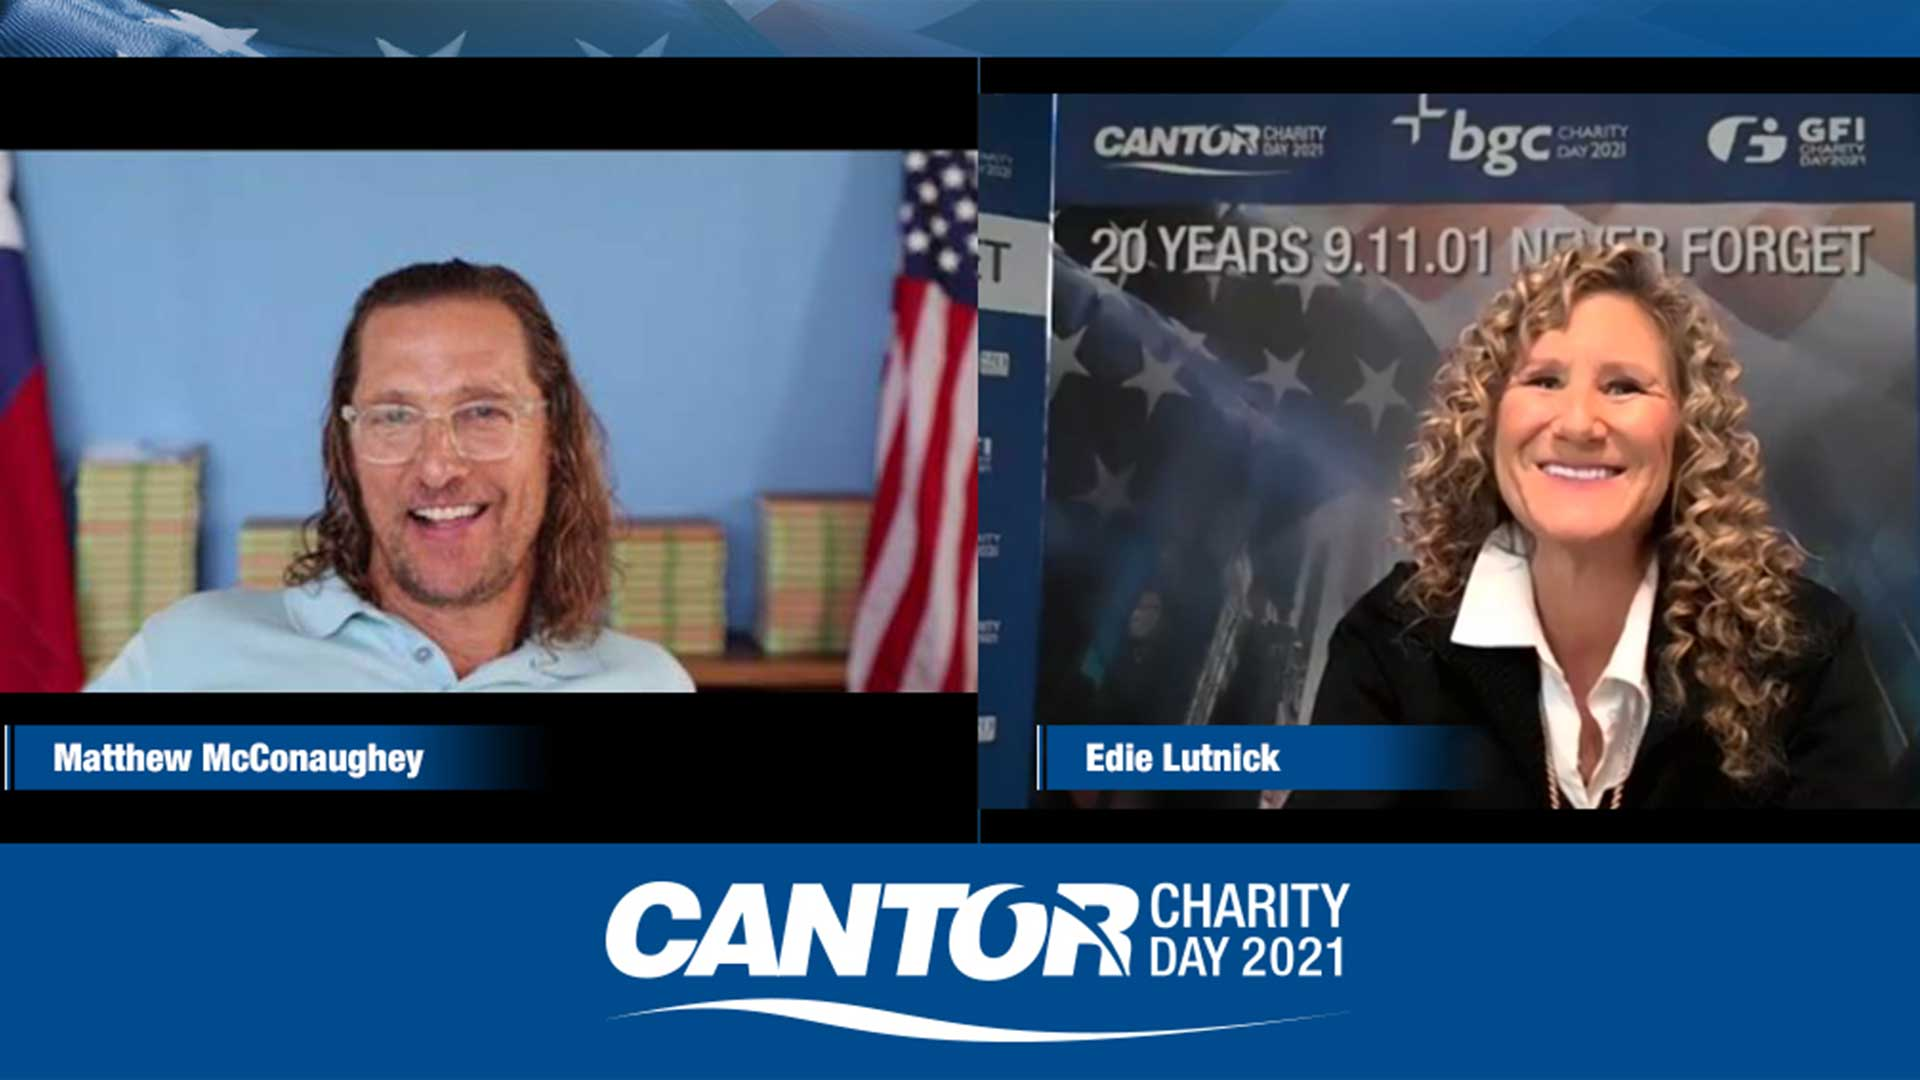 Cantor Fitzgerald Charity Day 2021: Never Forget. Give Back.